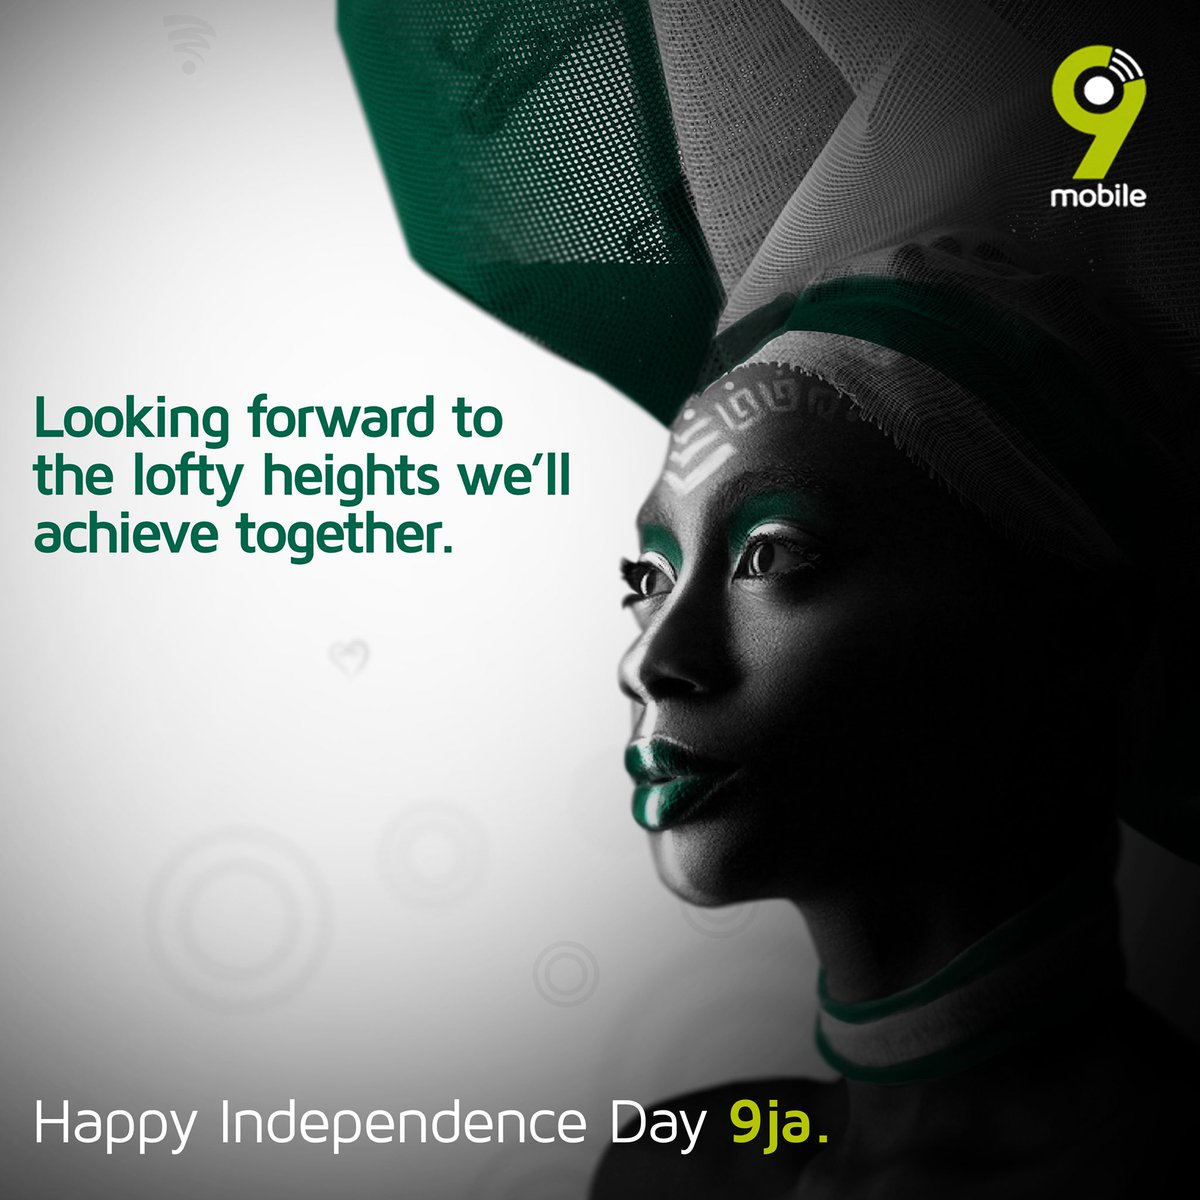 9mobile Prize (@9mobilereads) | Twitter